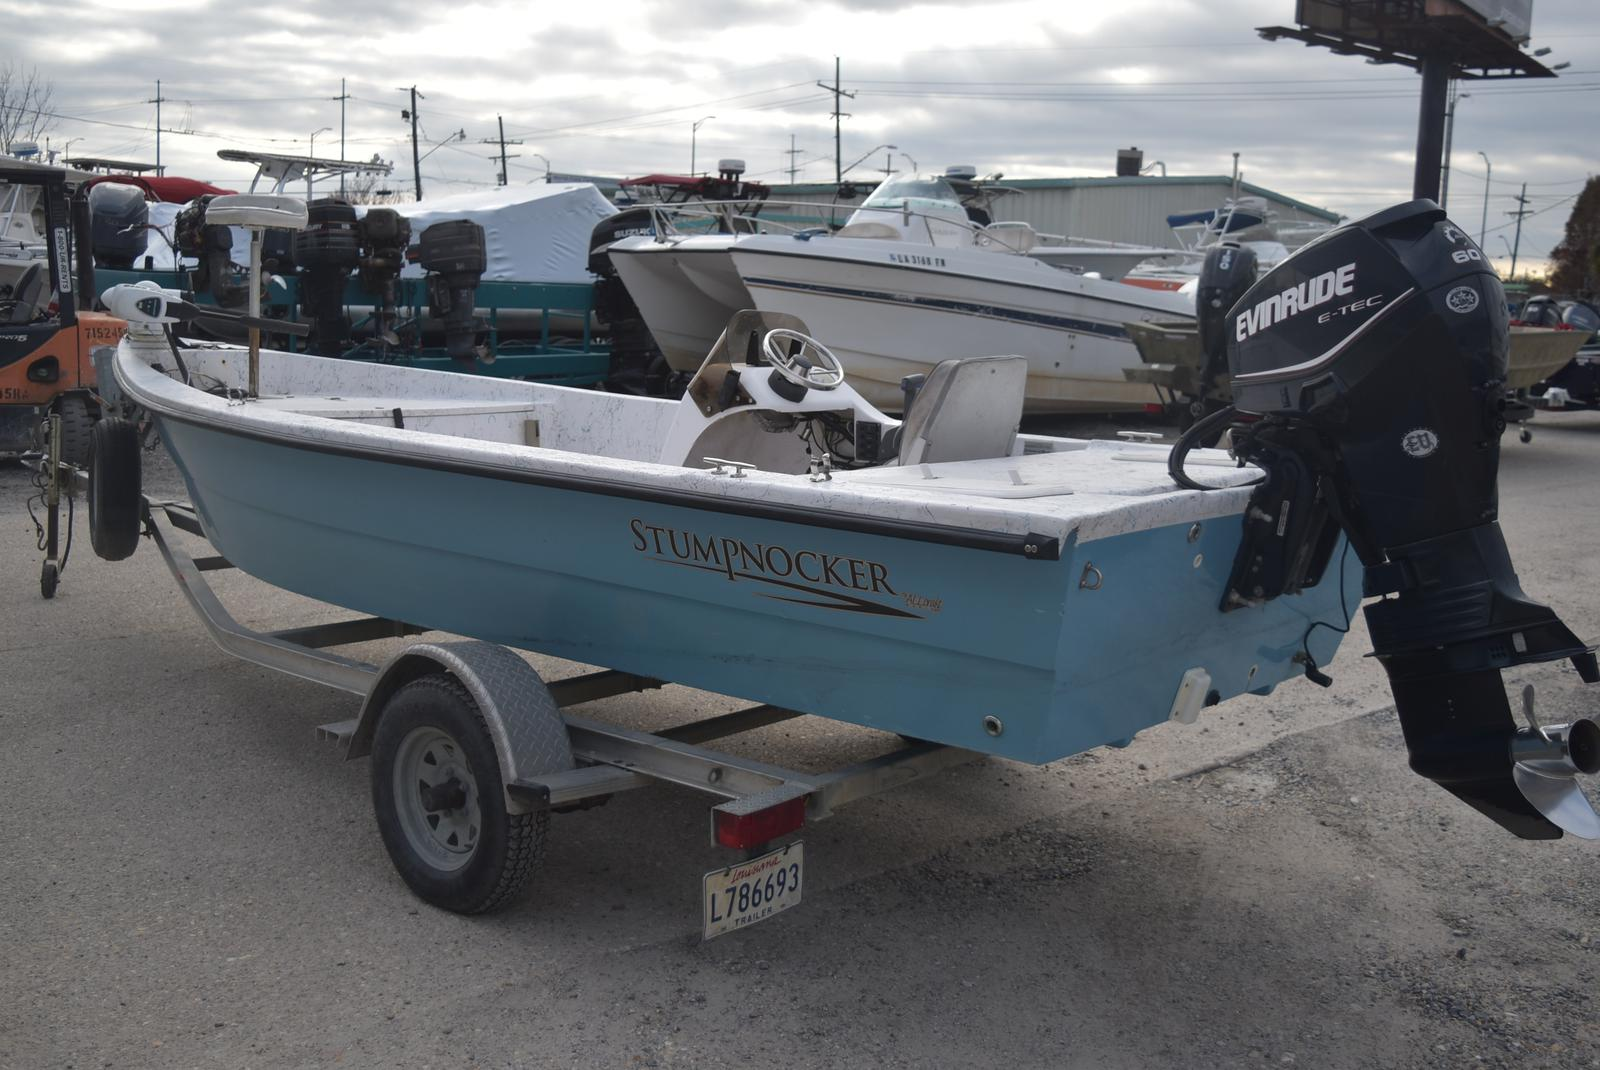 2012 Stumpnocker boat for sale, model of the boat is 17 Stumpnocker & Image # 2 of 7